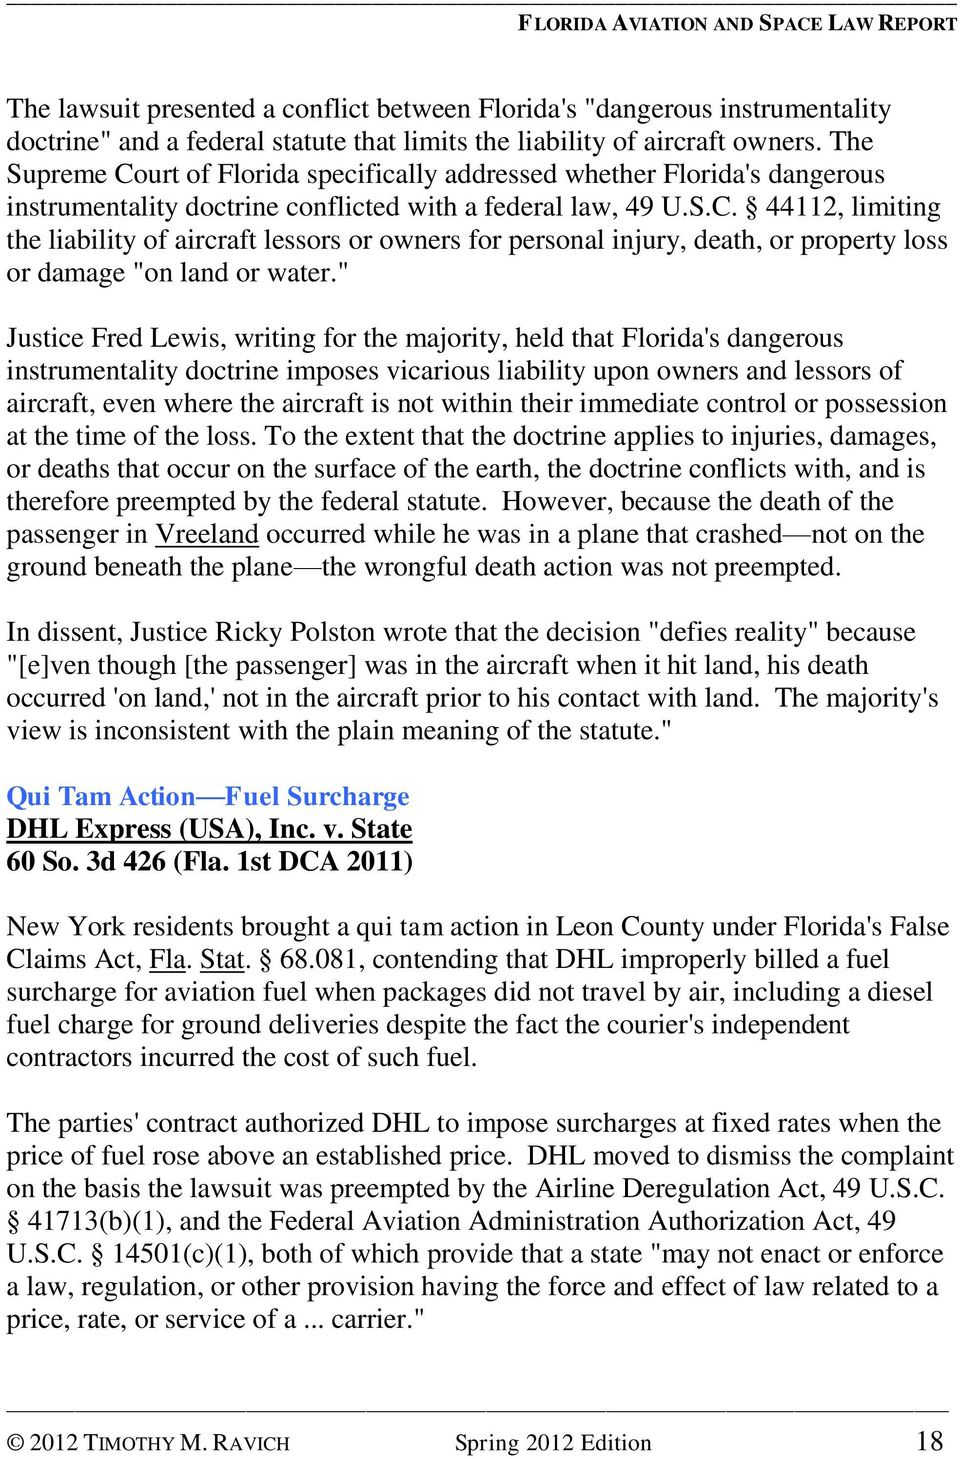 """ Justice Fred Lewis, writing for the majority, held that Florida's dangerous instrumentality doctrine imposes vicarious liability upon owners and lessors of aircraft, even where the aircraft is not"